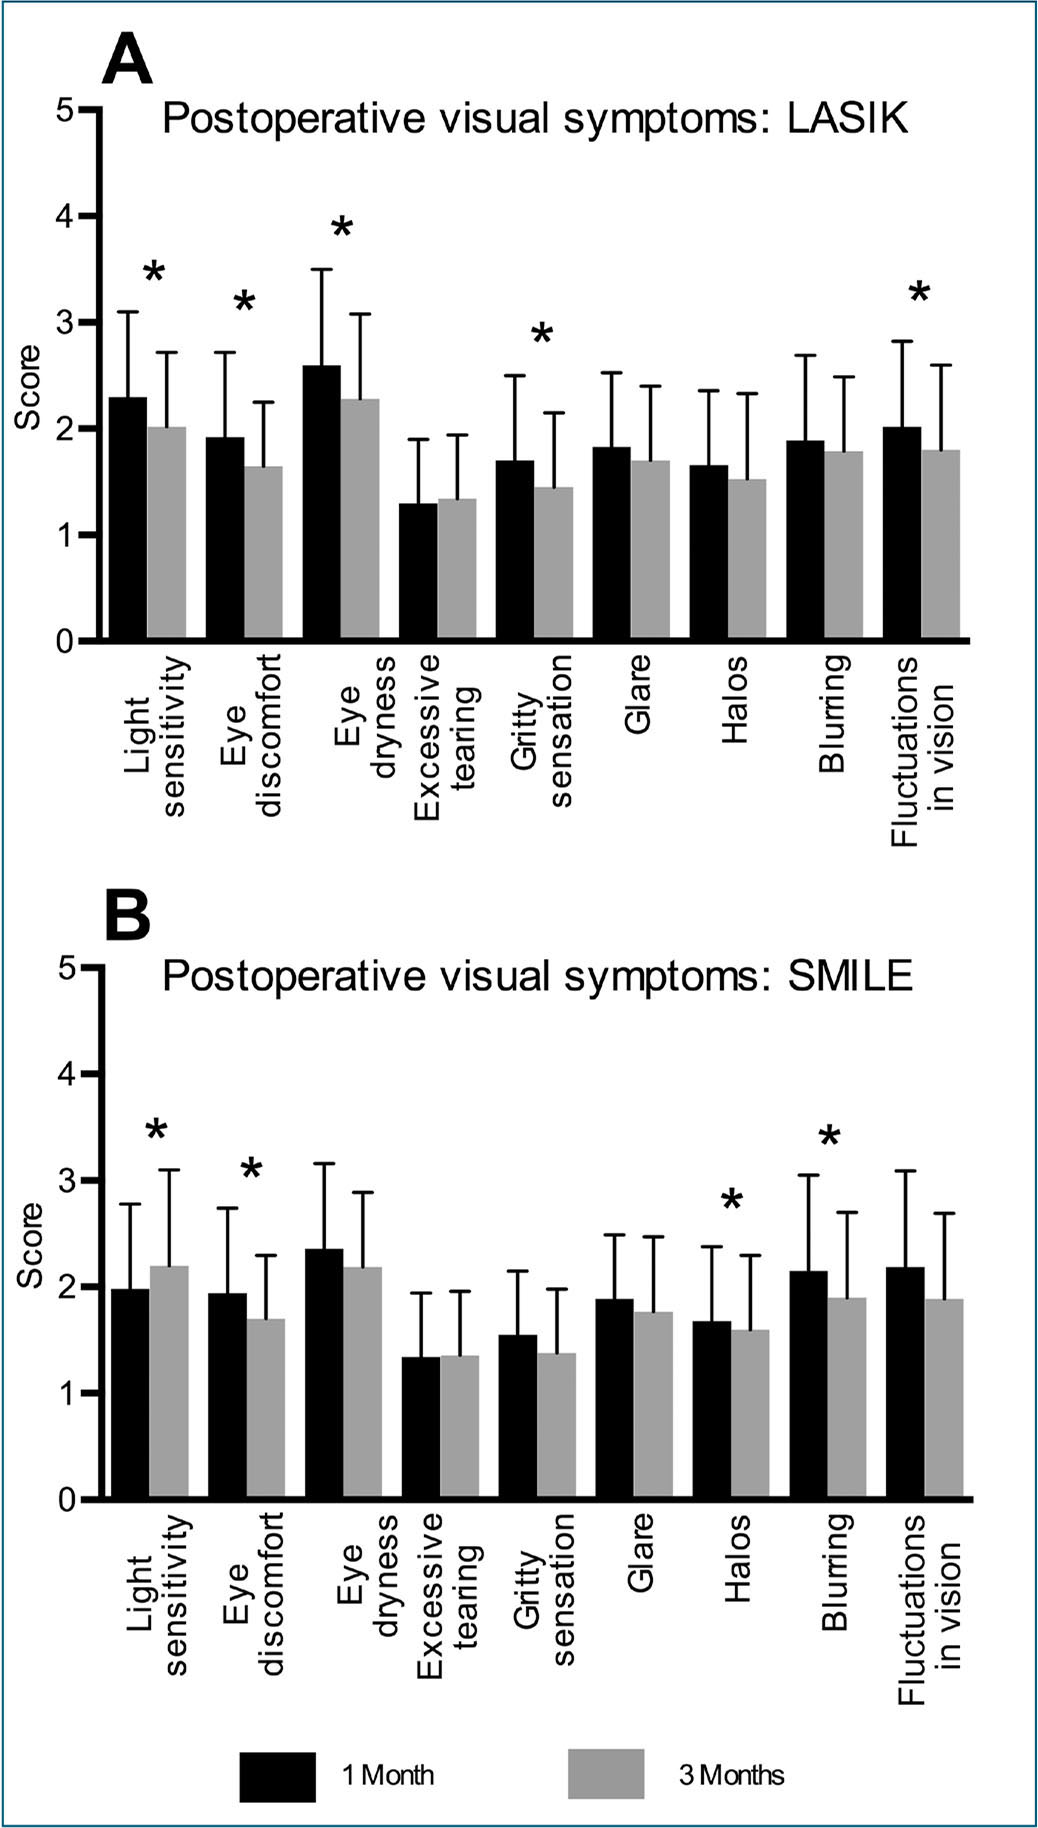 Postoperative visual symptoms after (A) LASIK and (B) small incision lenticule extraction (SMILE), scored from 0 = none to 5 = extremely/very severe. Asterisk marks significant differences (P < .05).